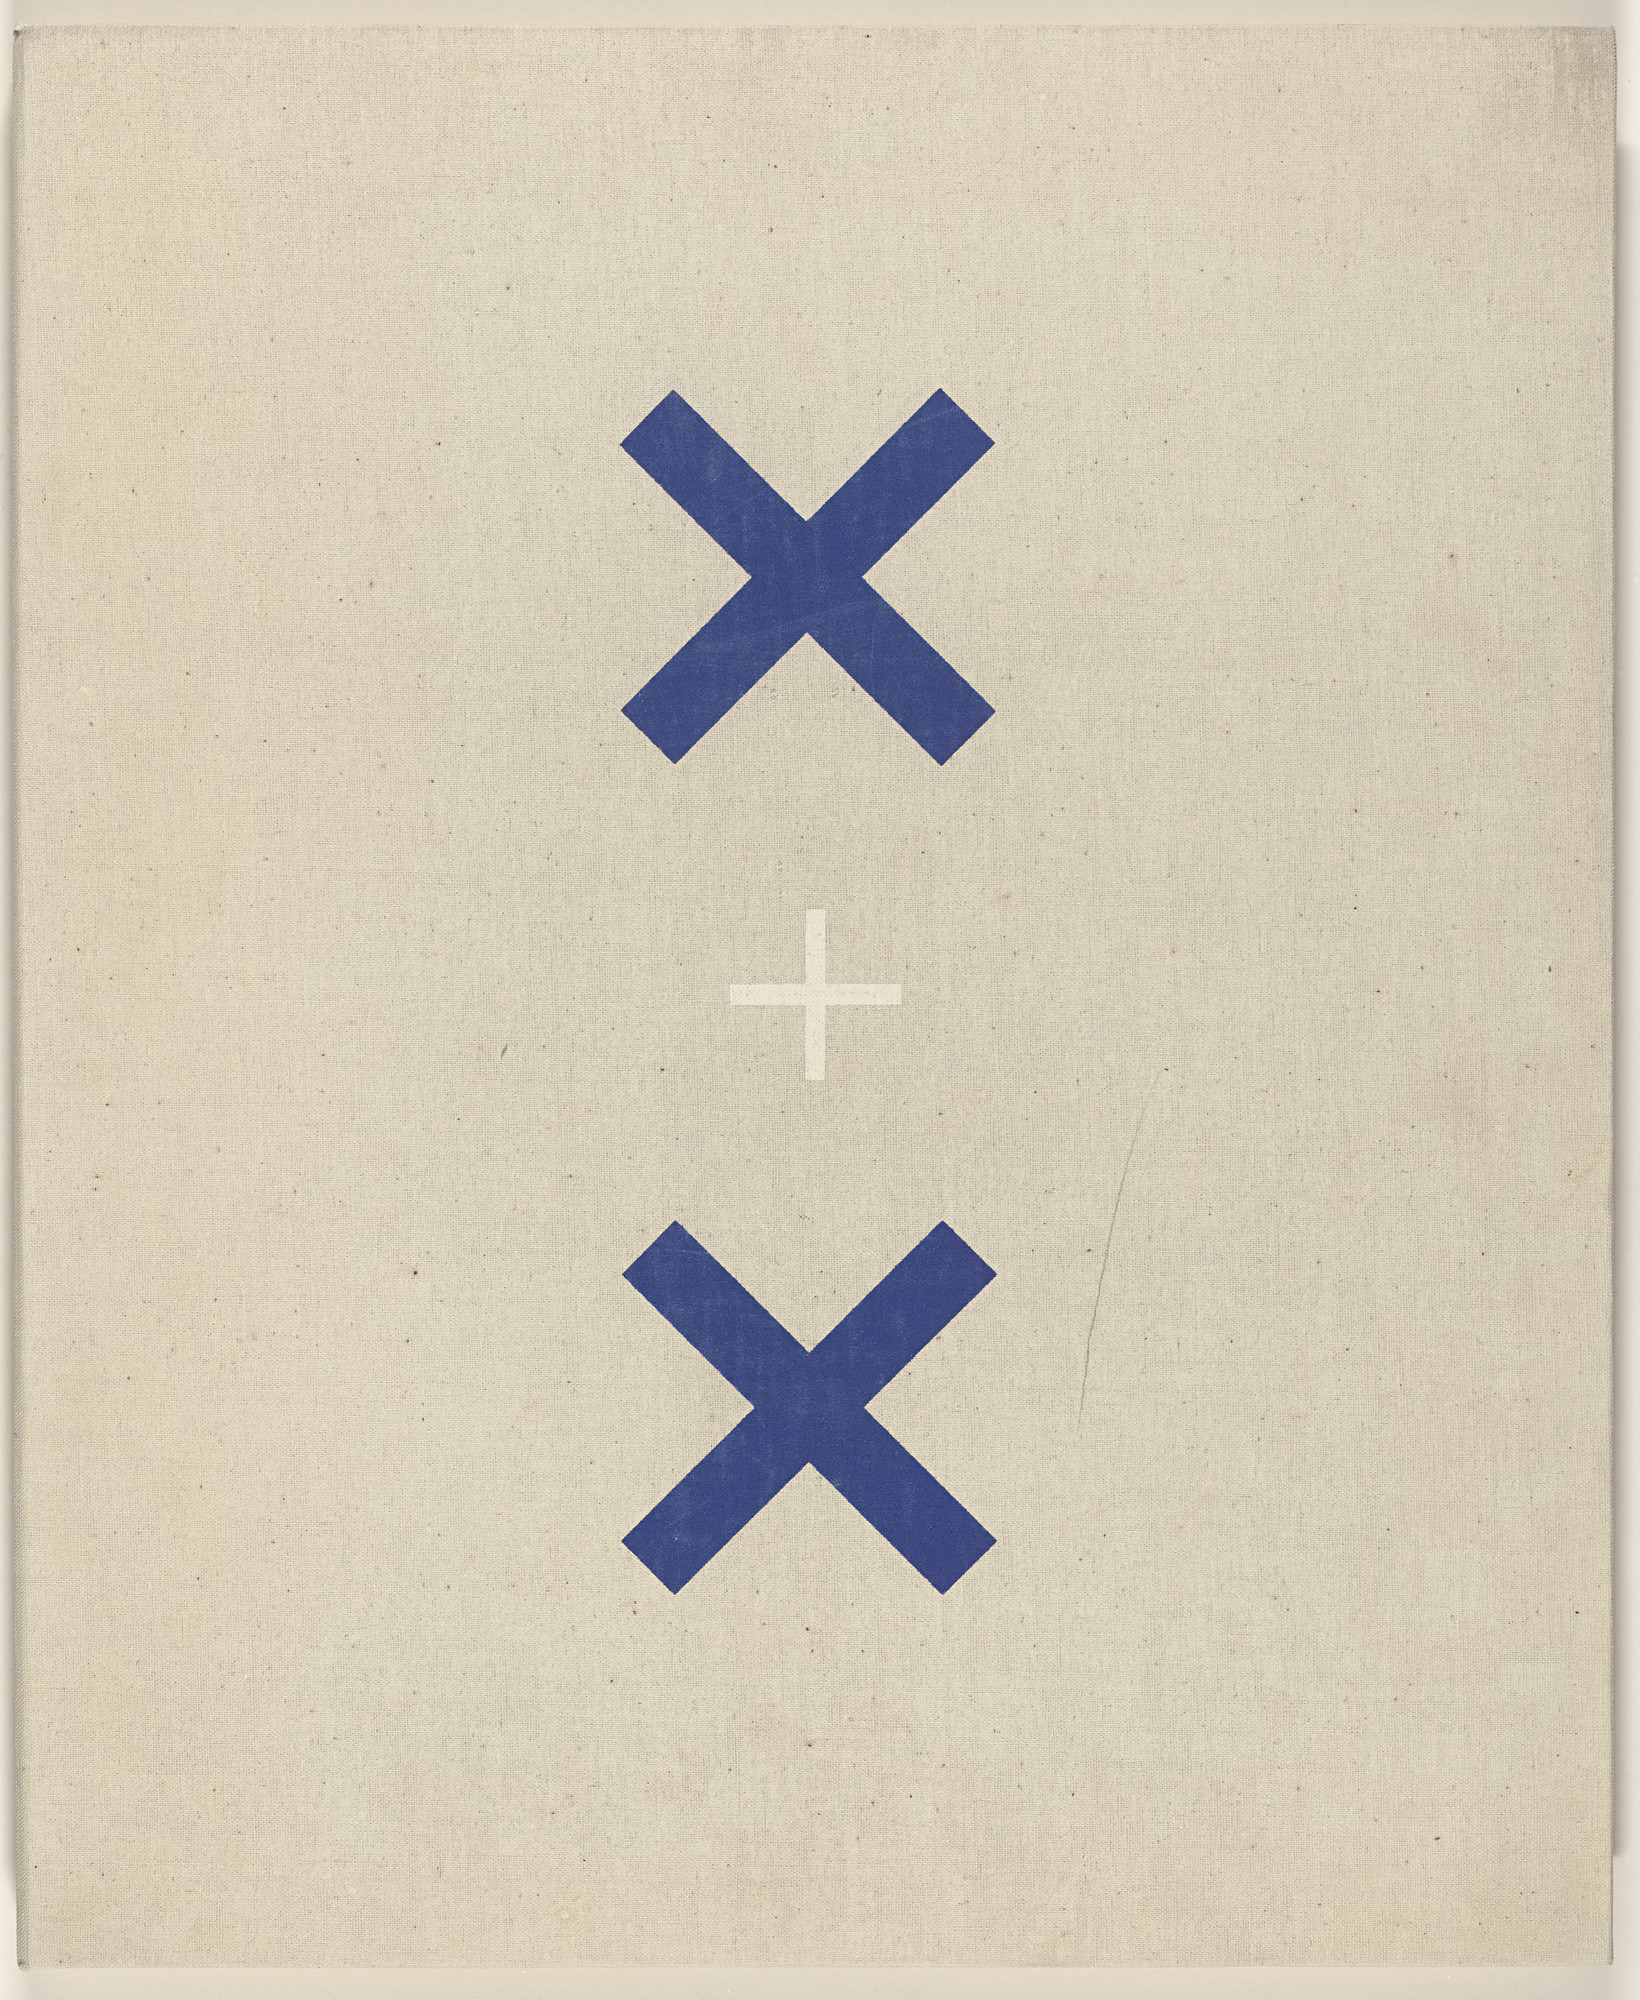 Various Artists, Ad Reinhardt, Robert Indiana, Larry Poons, Roy Lichtenstein, Stuart Davis, Robert Motherwell, Ellsworth Kelly, Frank Stella, Andy Warhol, George Ortman. X + X (Ten Works by Ten Painters). 1964